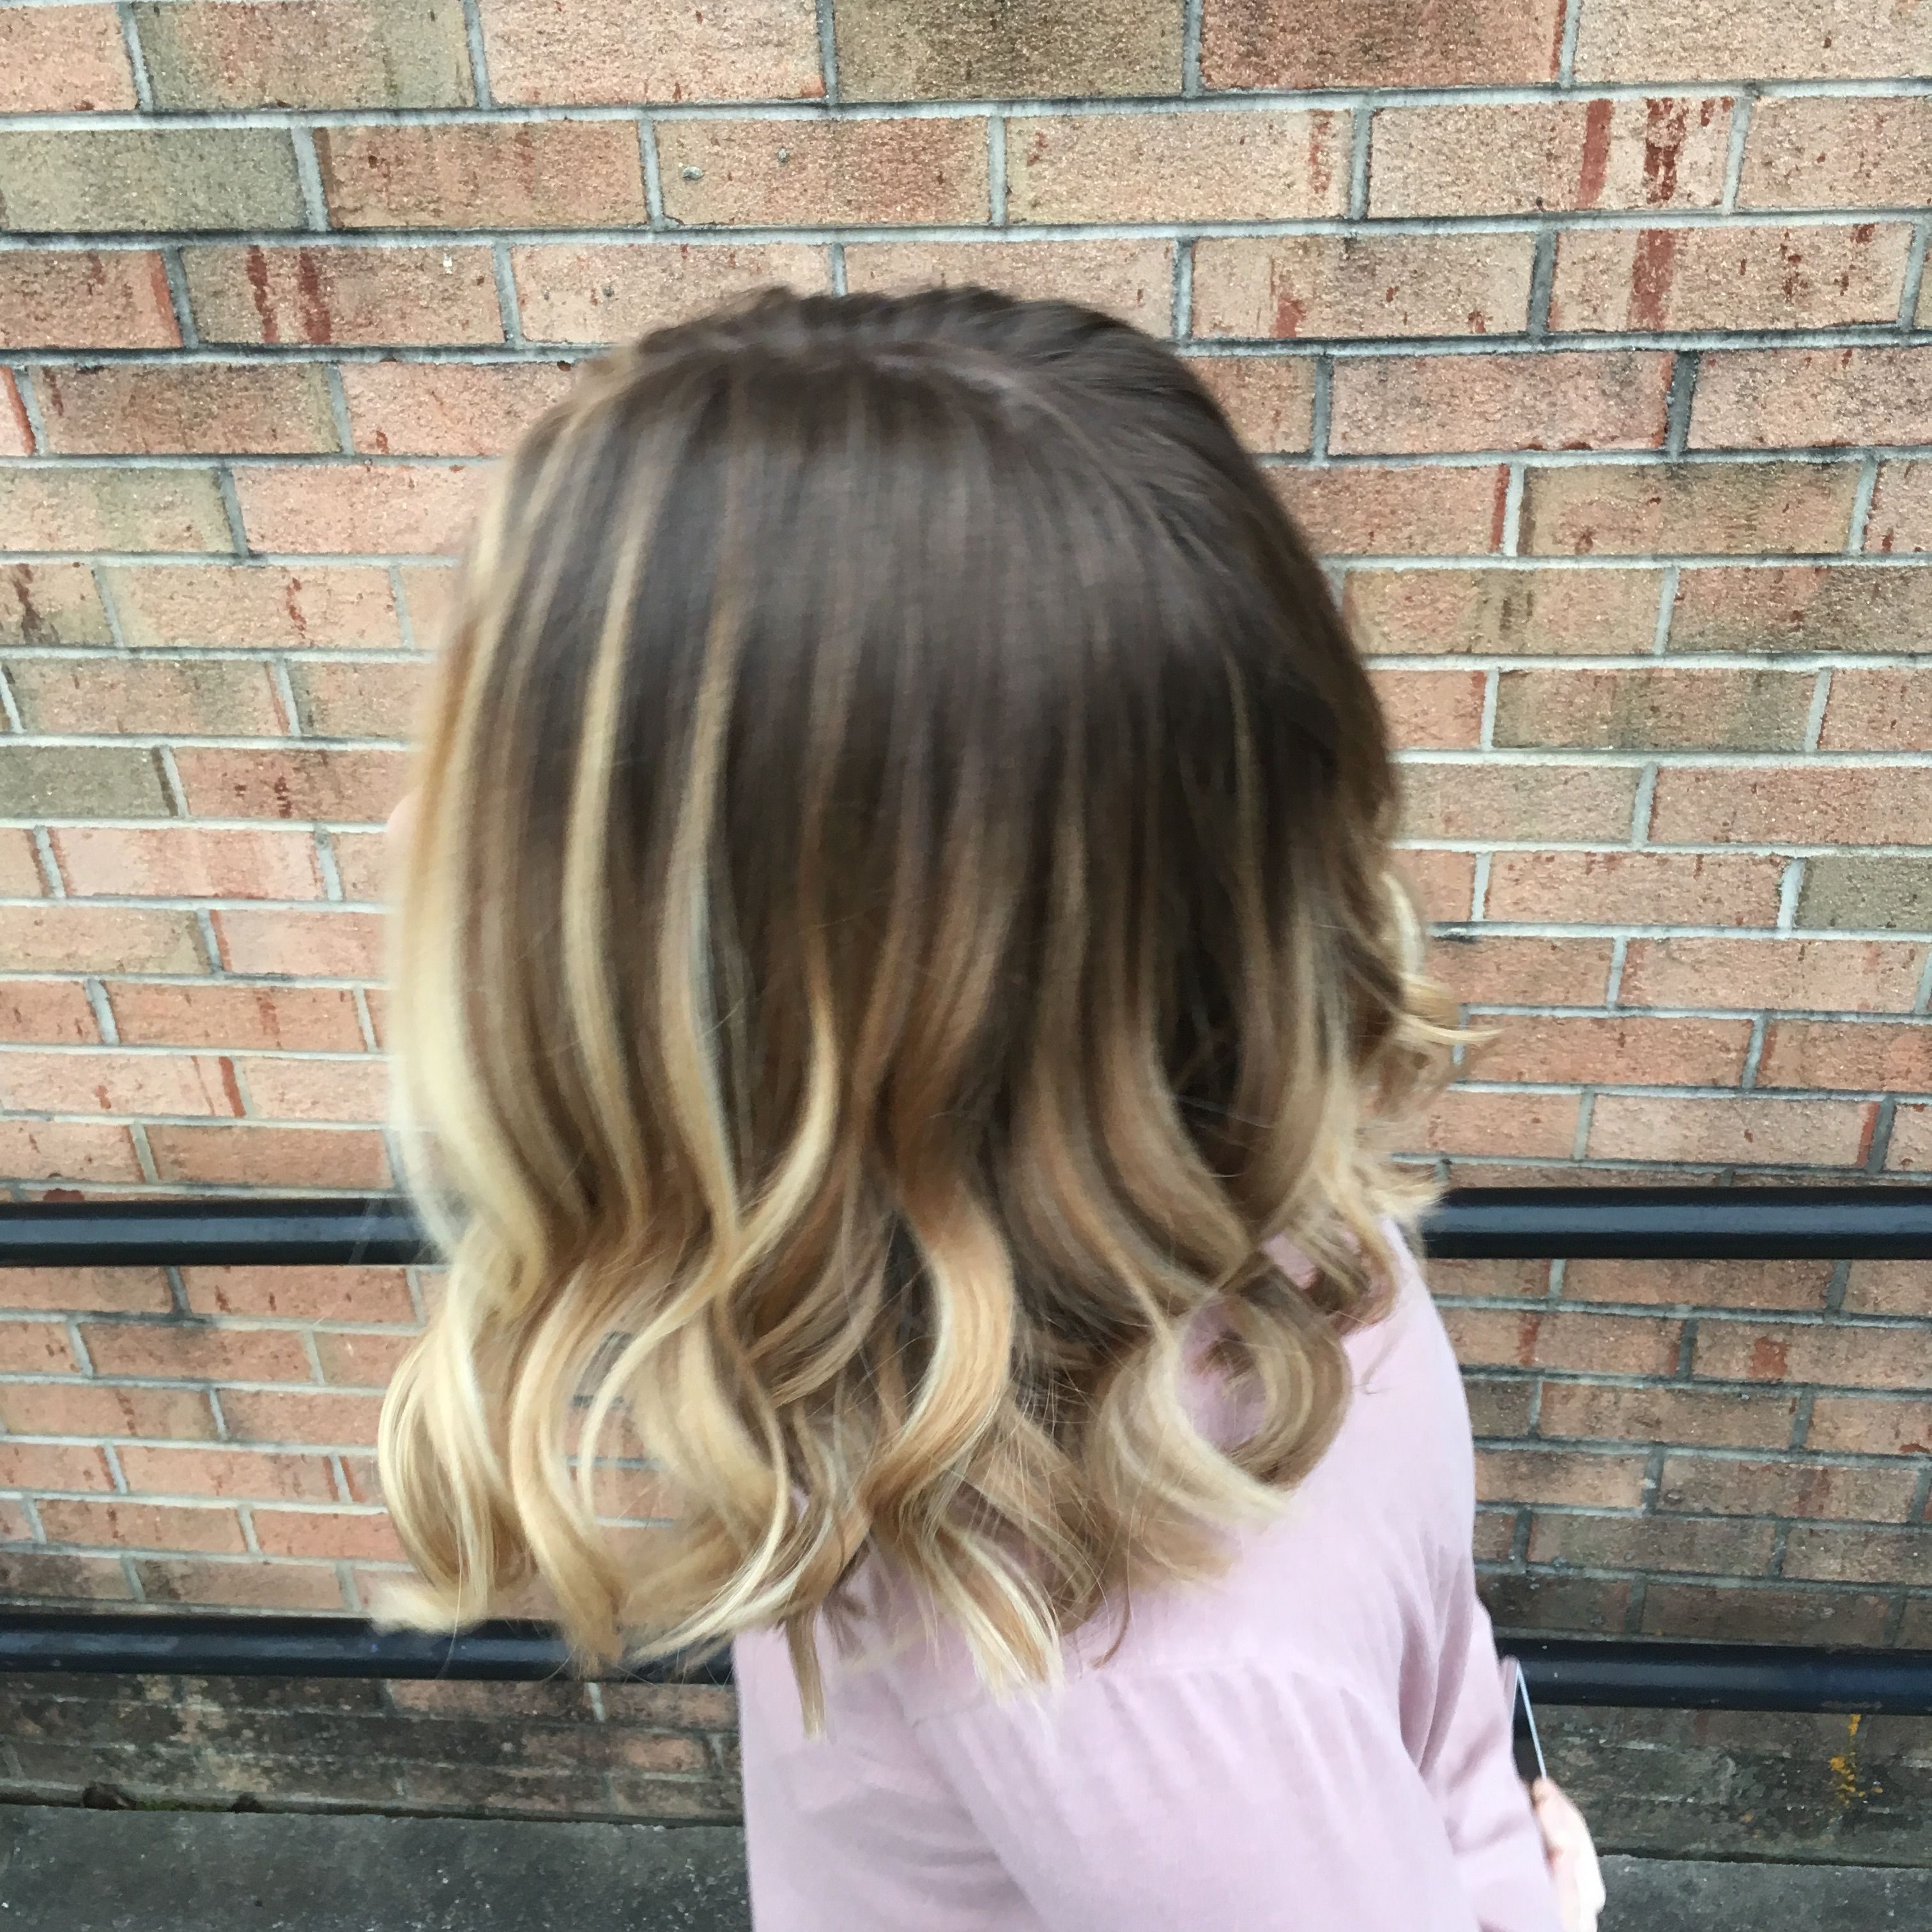 A Balayage Highlight With W Slight Shadow Root And Low